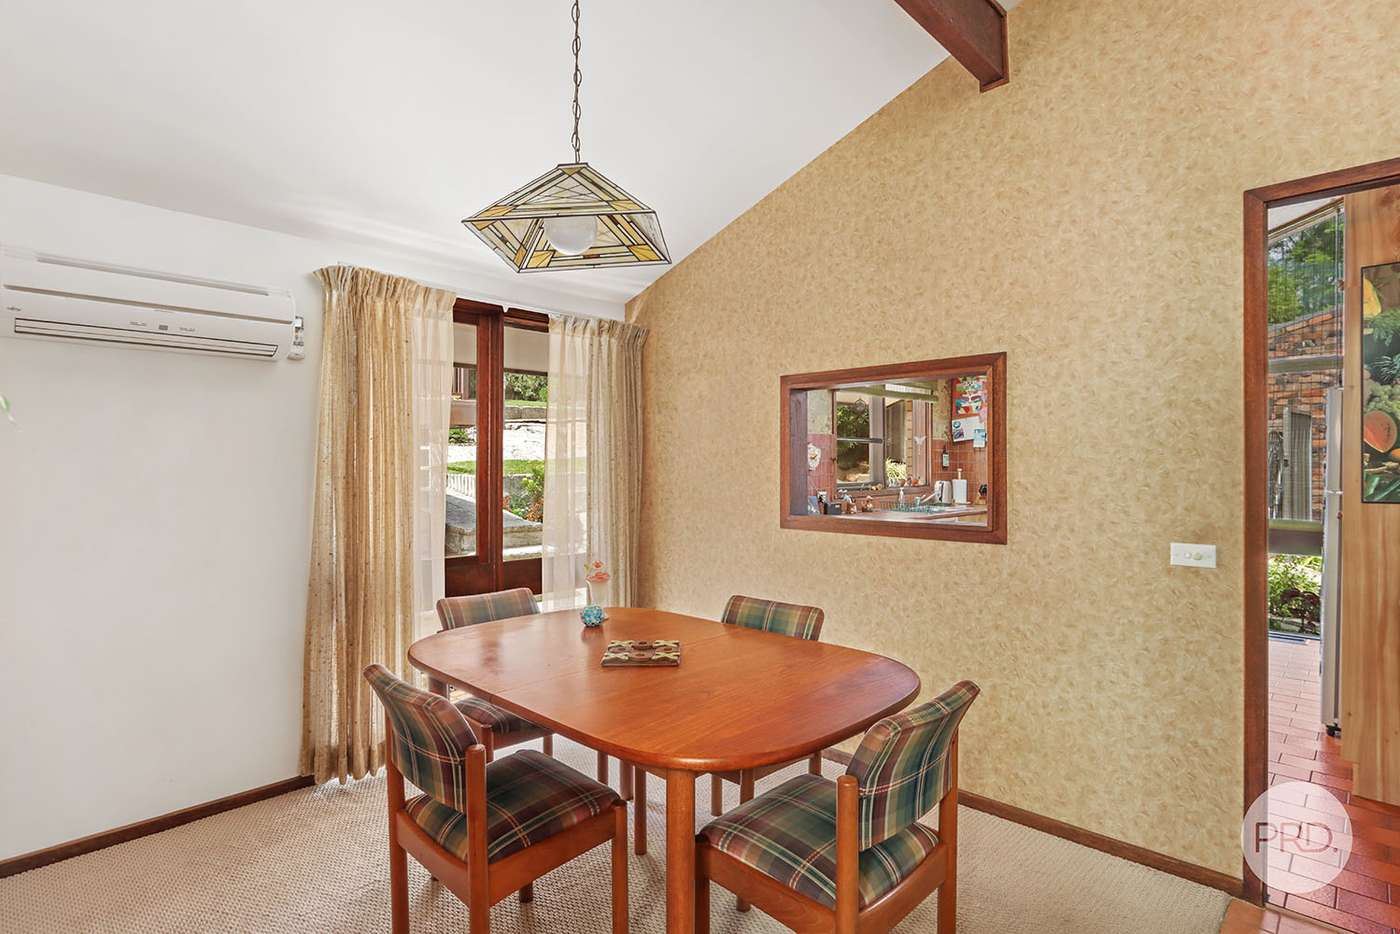 Sixth view of Homely house listing, 5 Maple Street, Lugarno NSW 2210